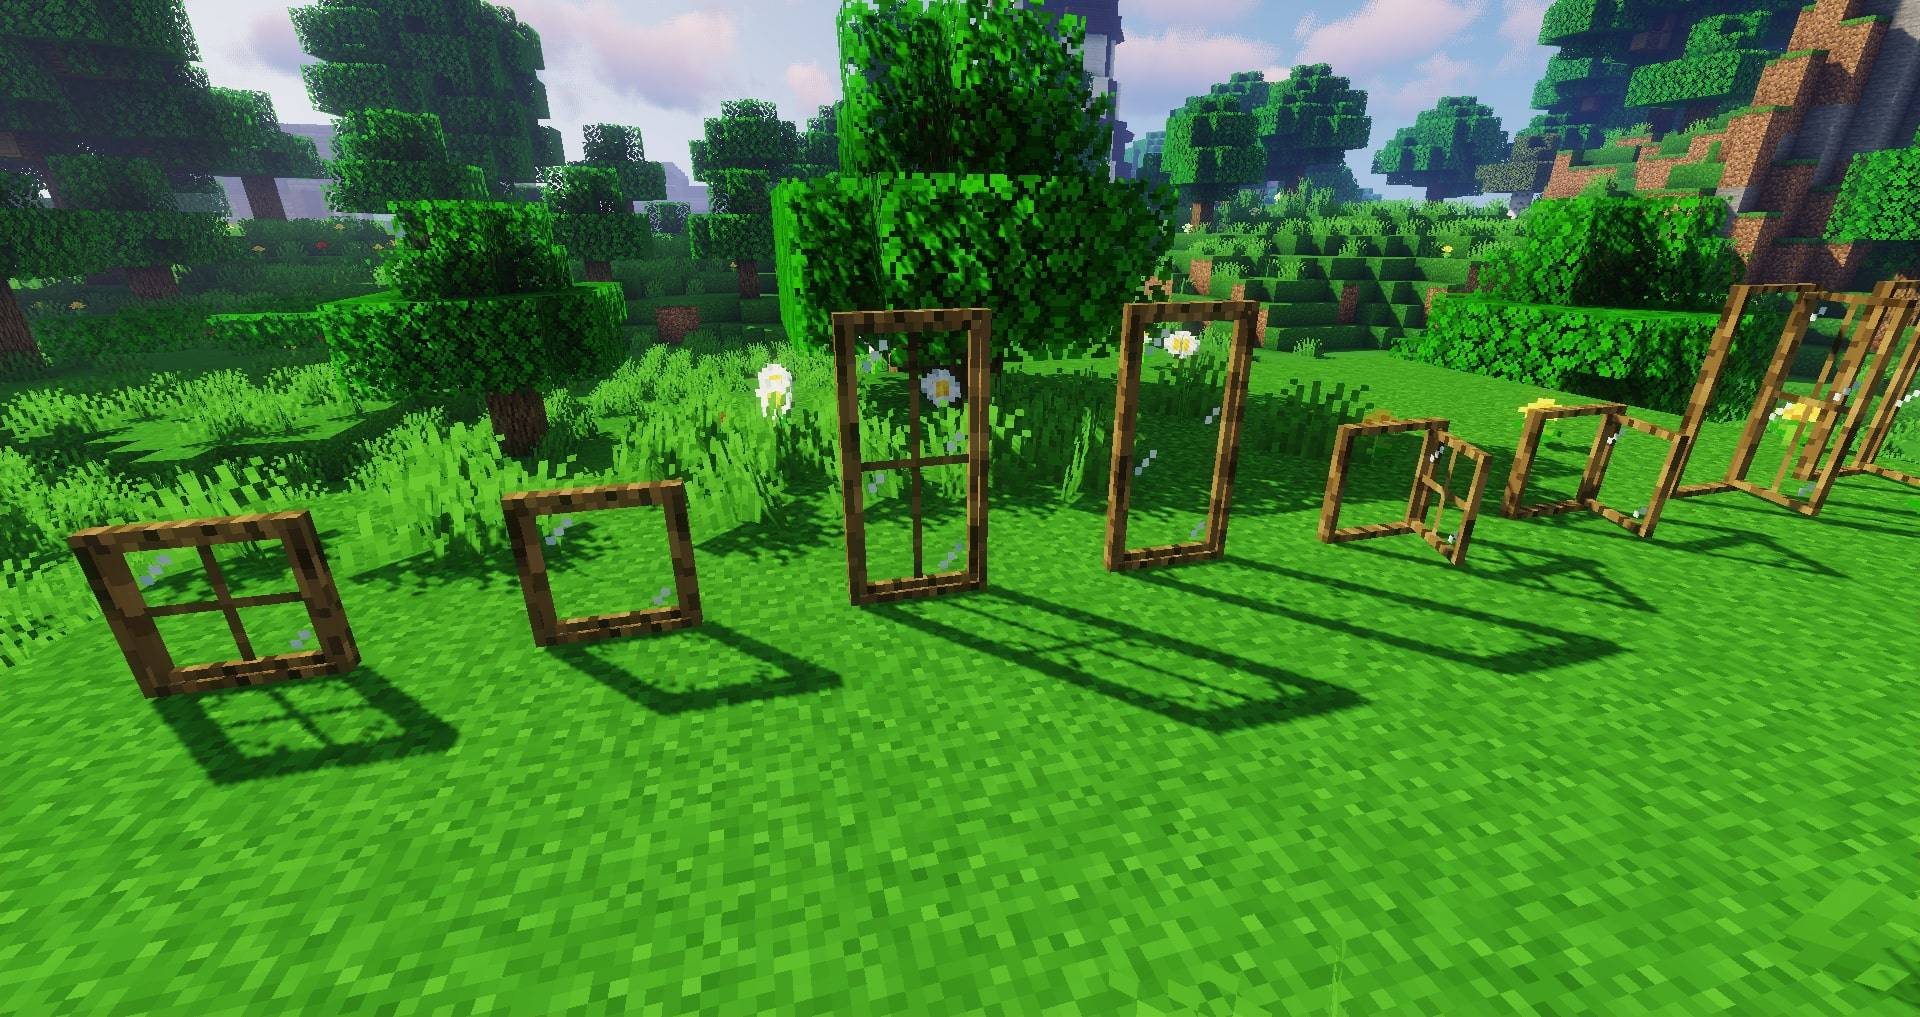 Macaw_s Windows mod for minecraft 25